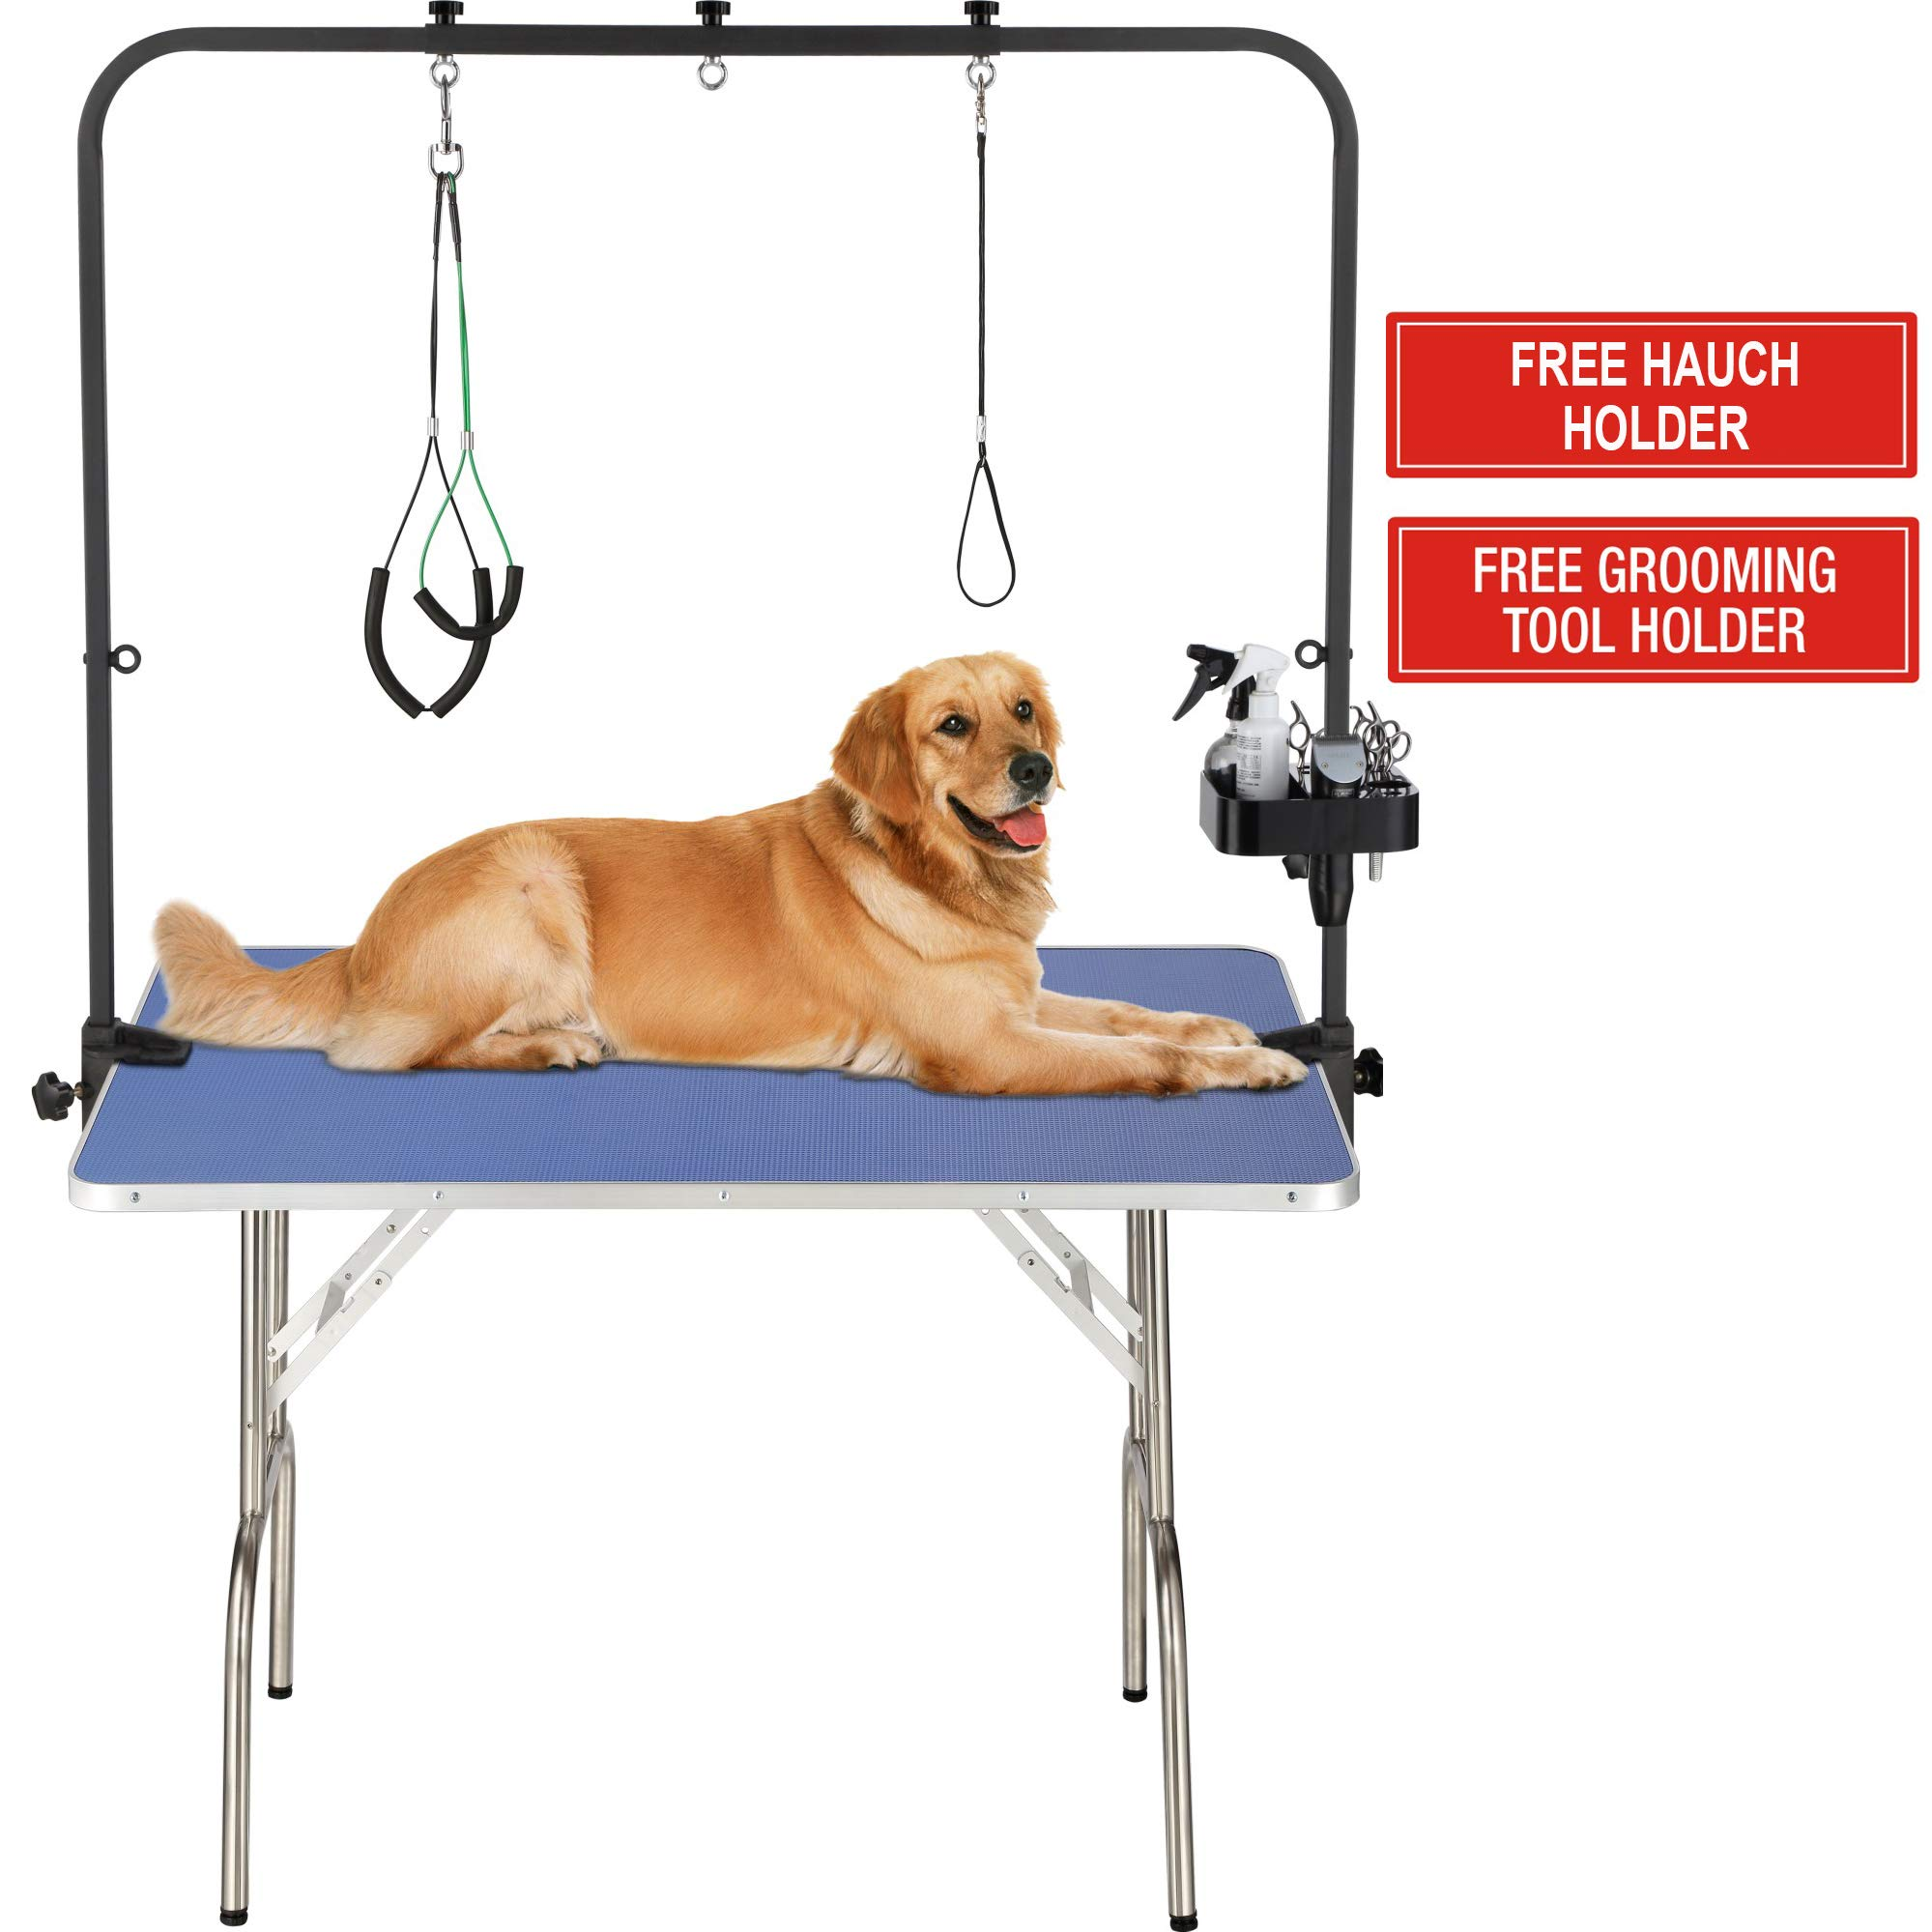 "ITORI 46"" Professional Grooming Table for Dog and Pet which is Foldable and Durable with Adjustable Arm, Stainless Leg Frame, Extra Tool Holder and Extra Hauch Holders"